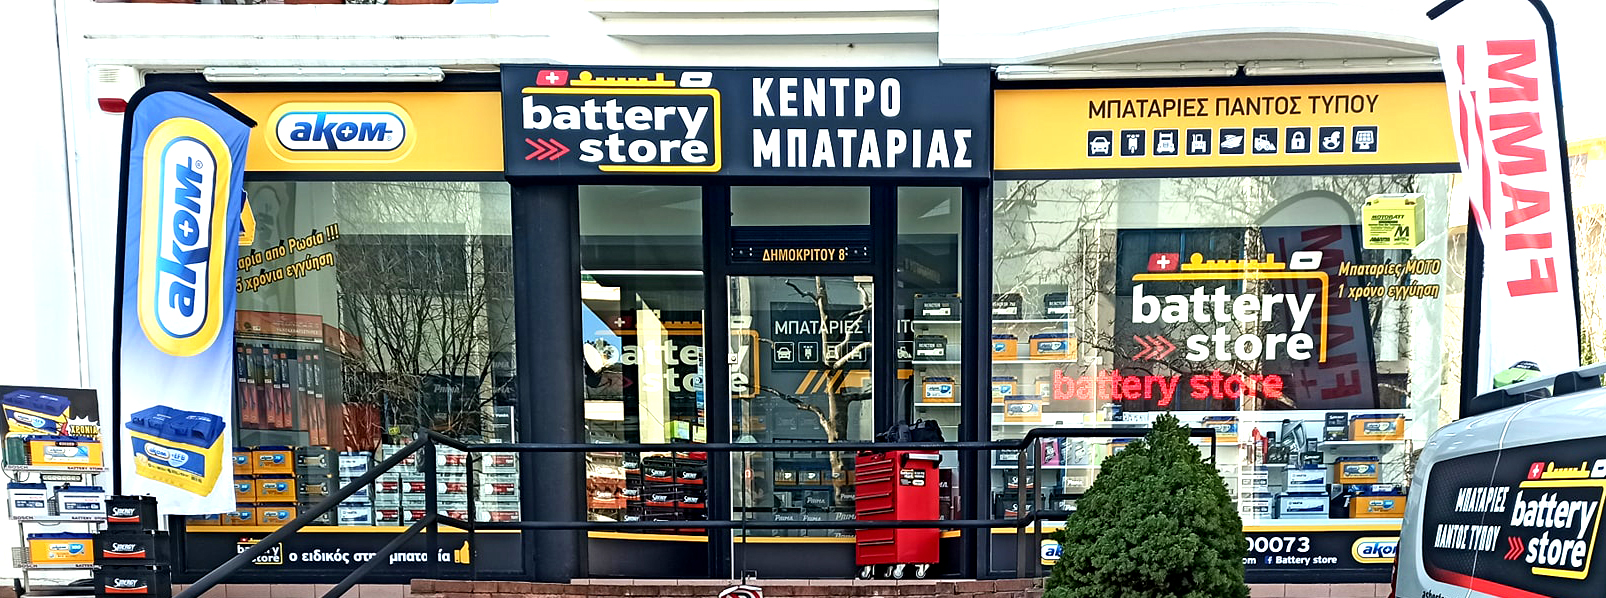 battery store front